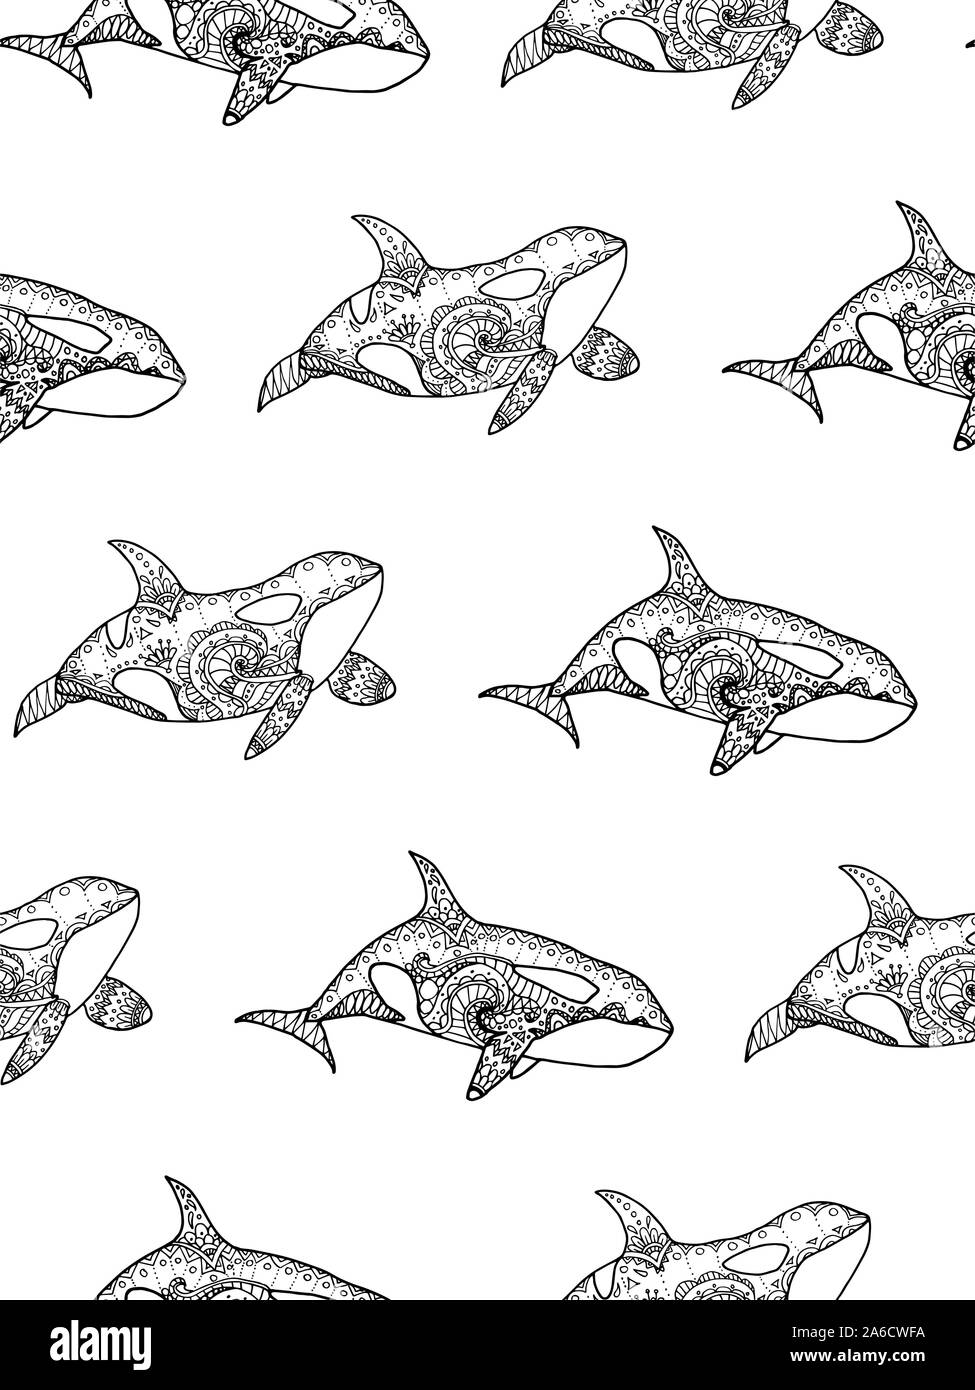 vector illustration of seamless pattern from hand drawing patterned killer whale coloring page book 2A6CWFA